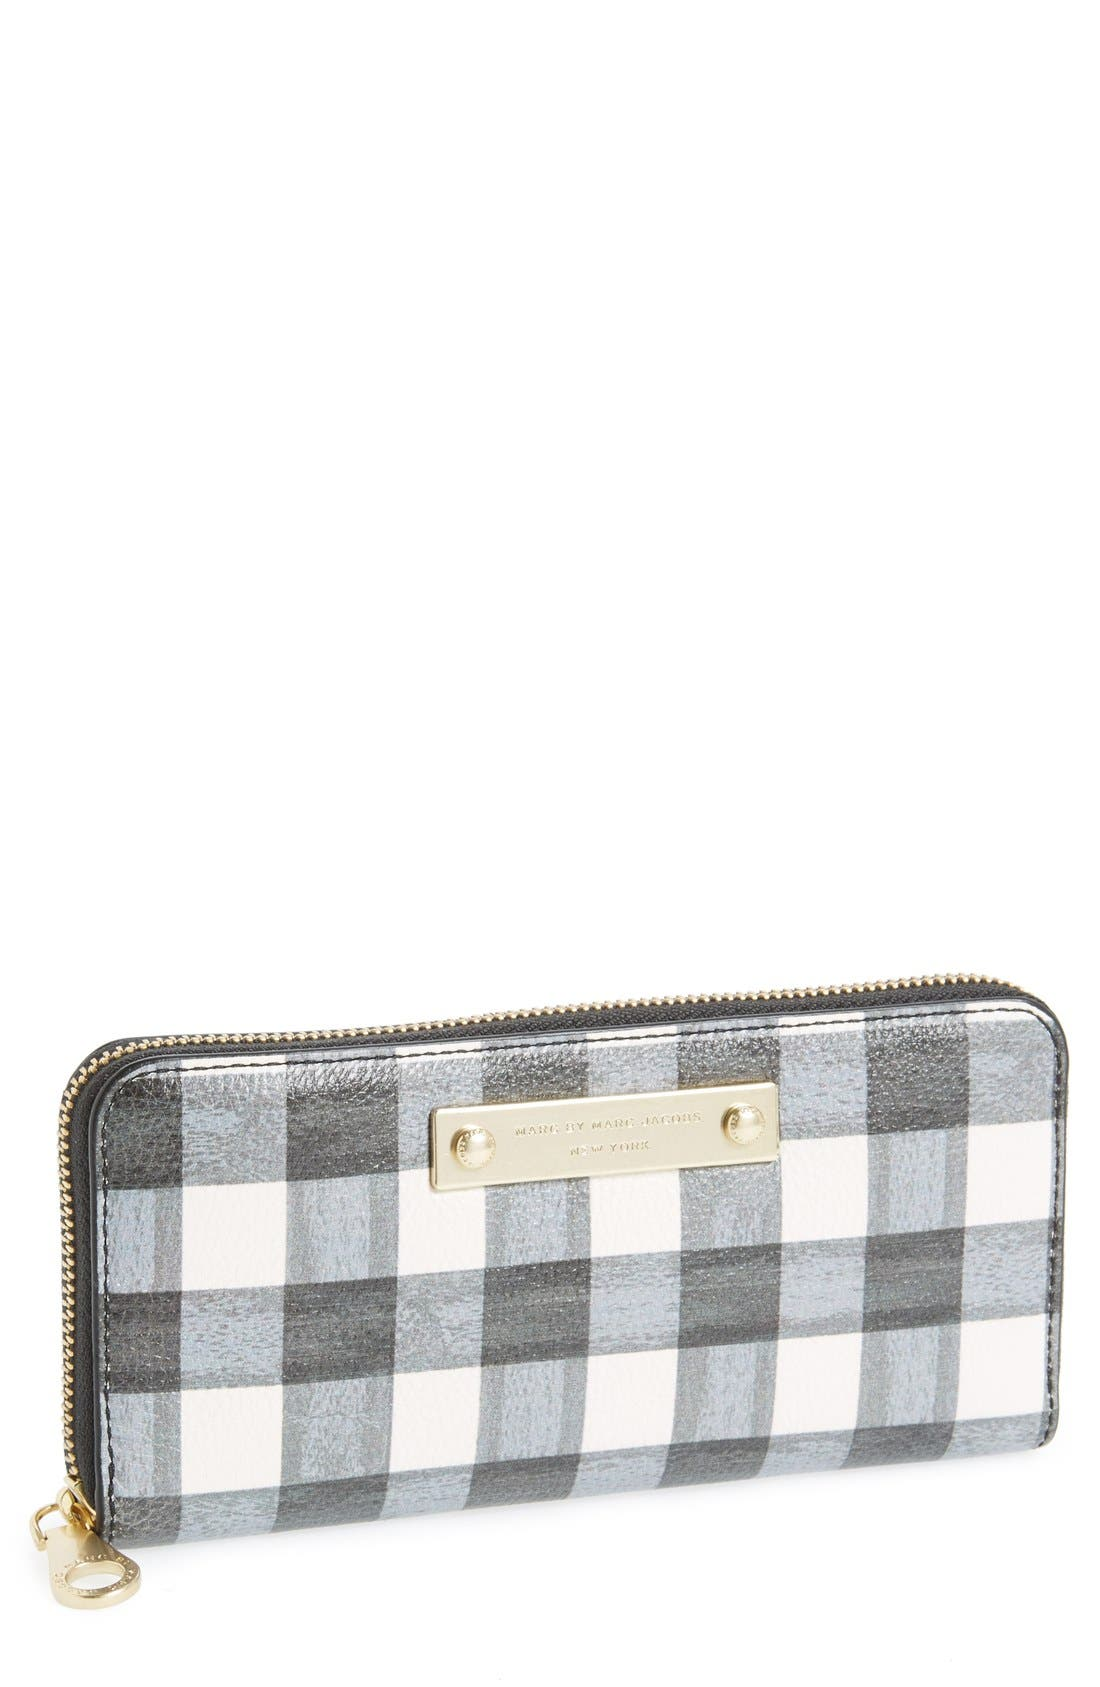 Alternate Image 1 Selected - MARC BY MARC JACOBS 'Slim' Print Leather Zip Around Wallet